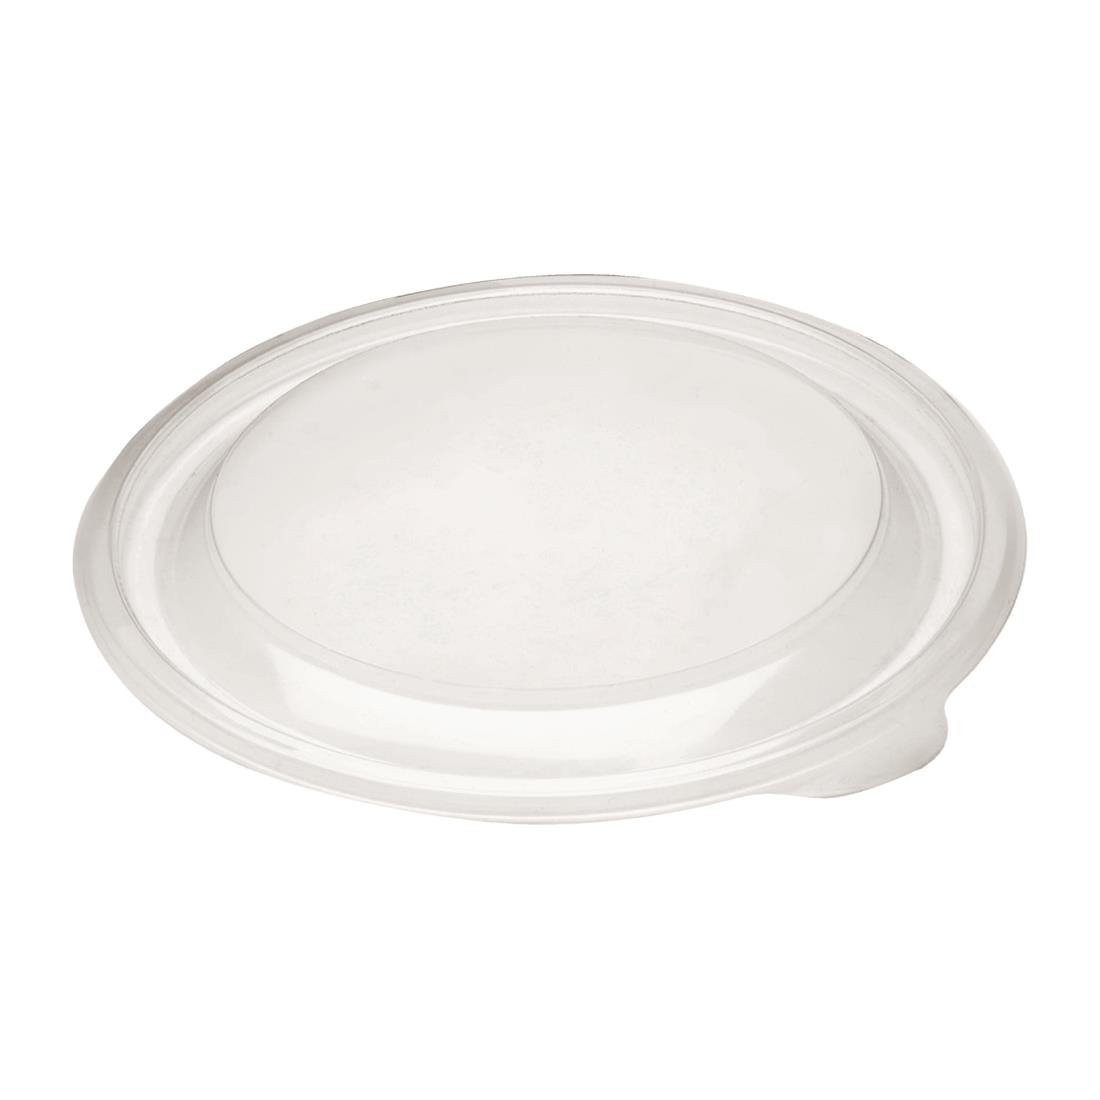 Lids for Sabert Fastpac Round Containers